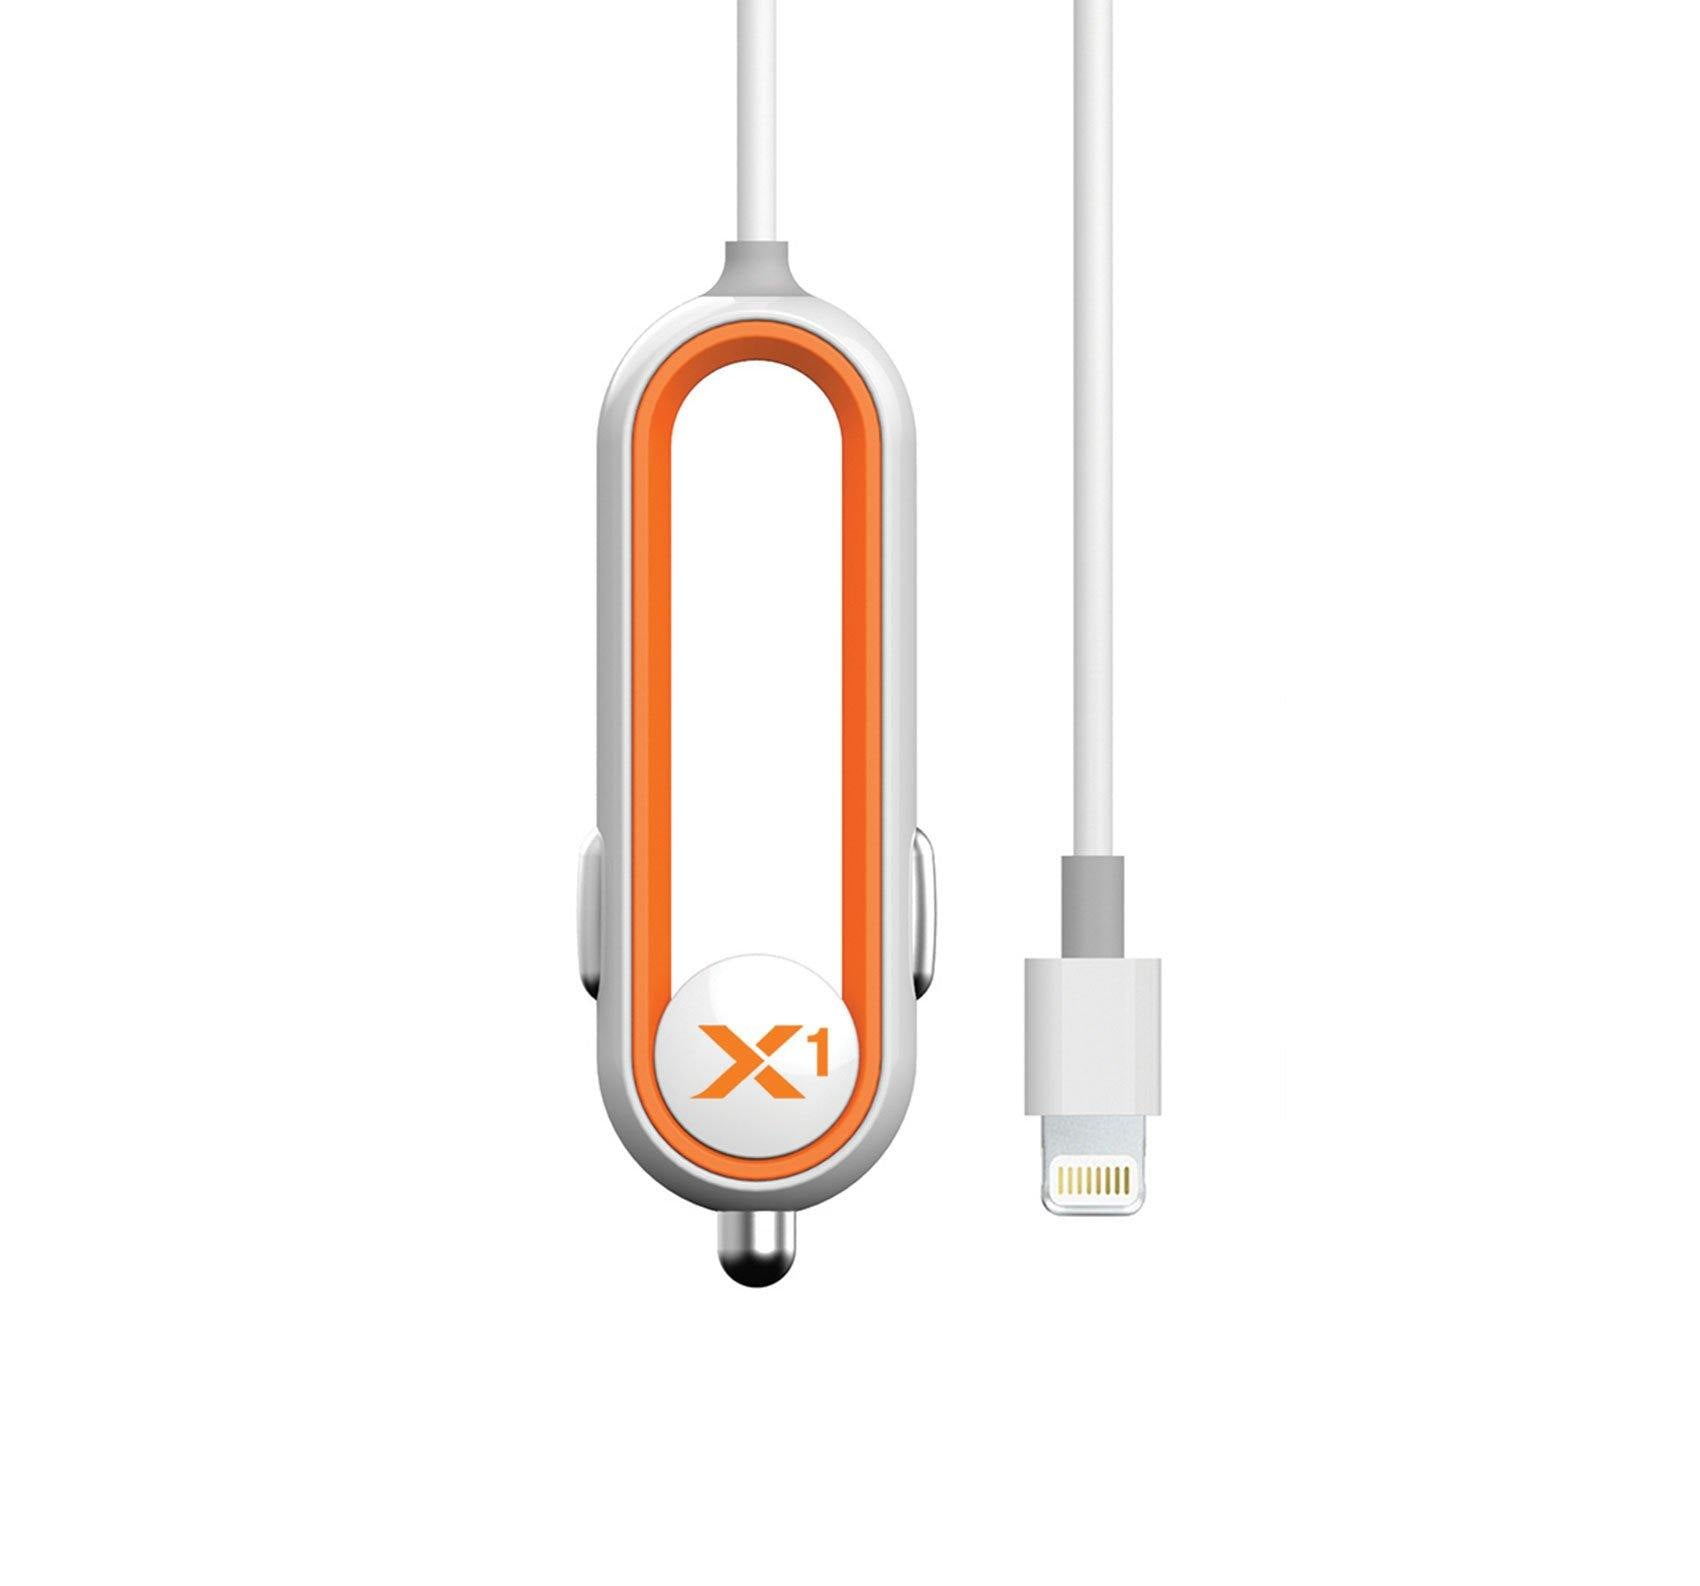 X1 Car Charger with Lightning Connector - Orange